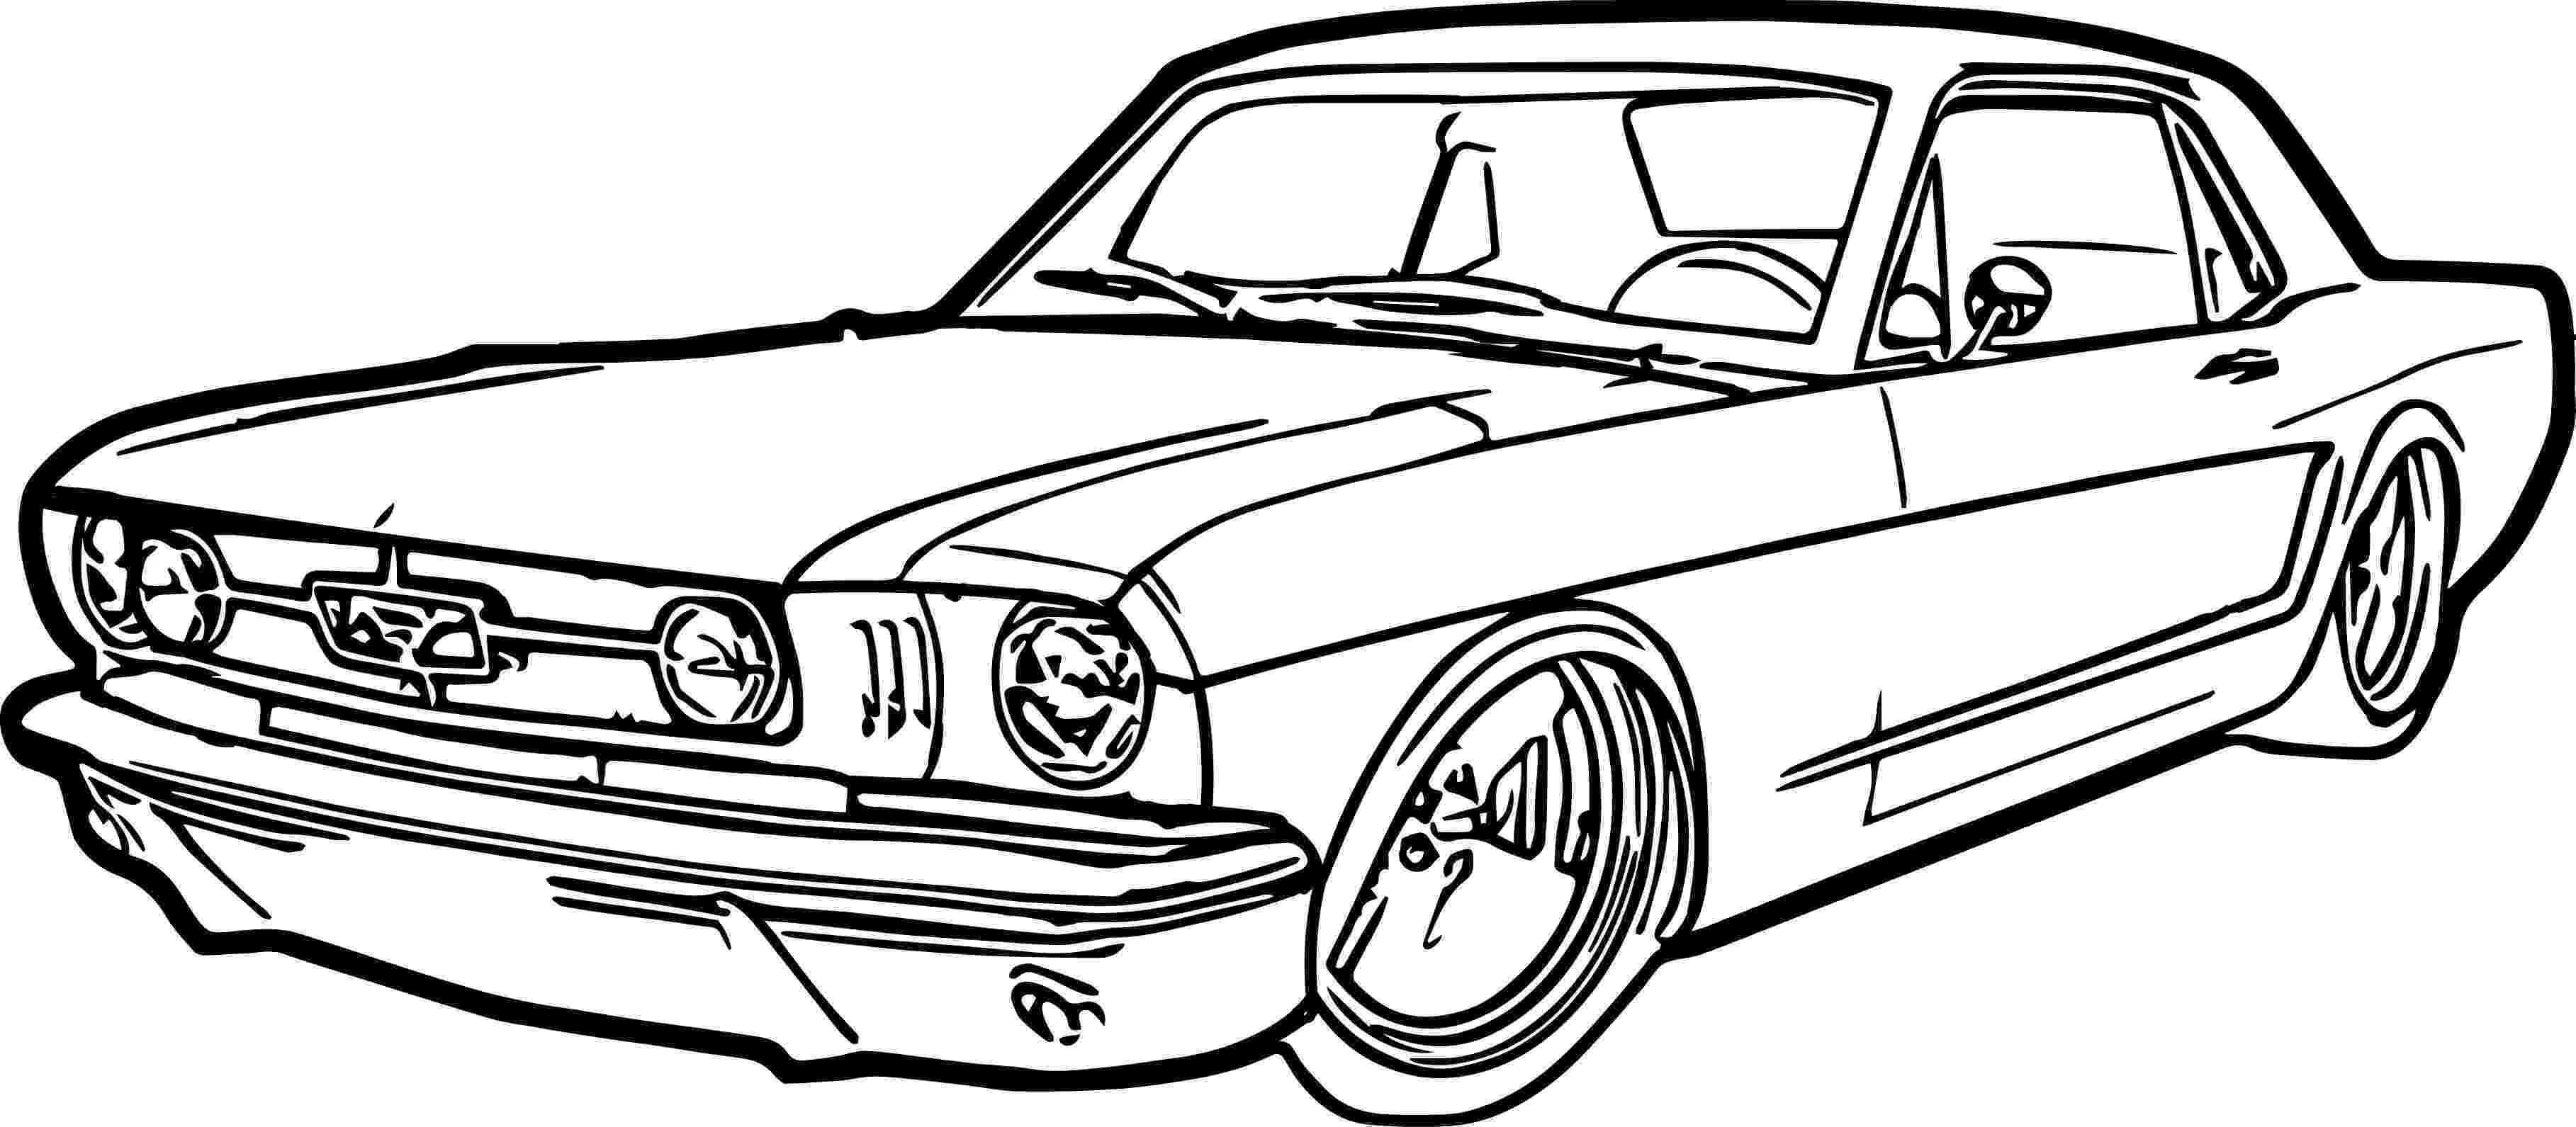 picture of car for colouring muscle car coloring pages to download and print for free colouring car of picture for